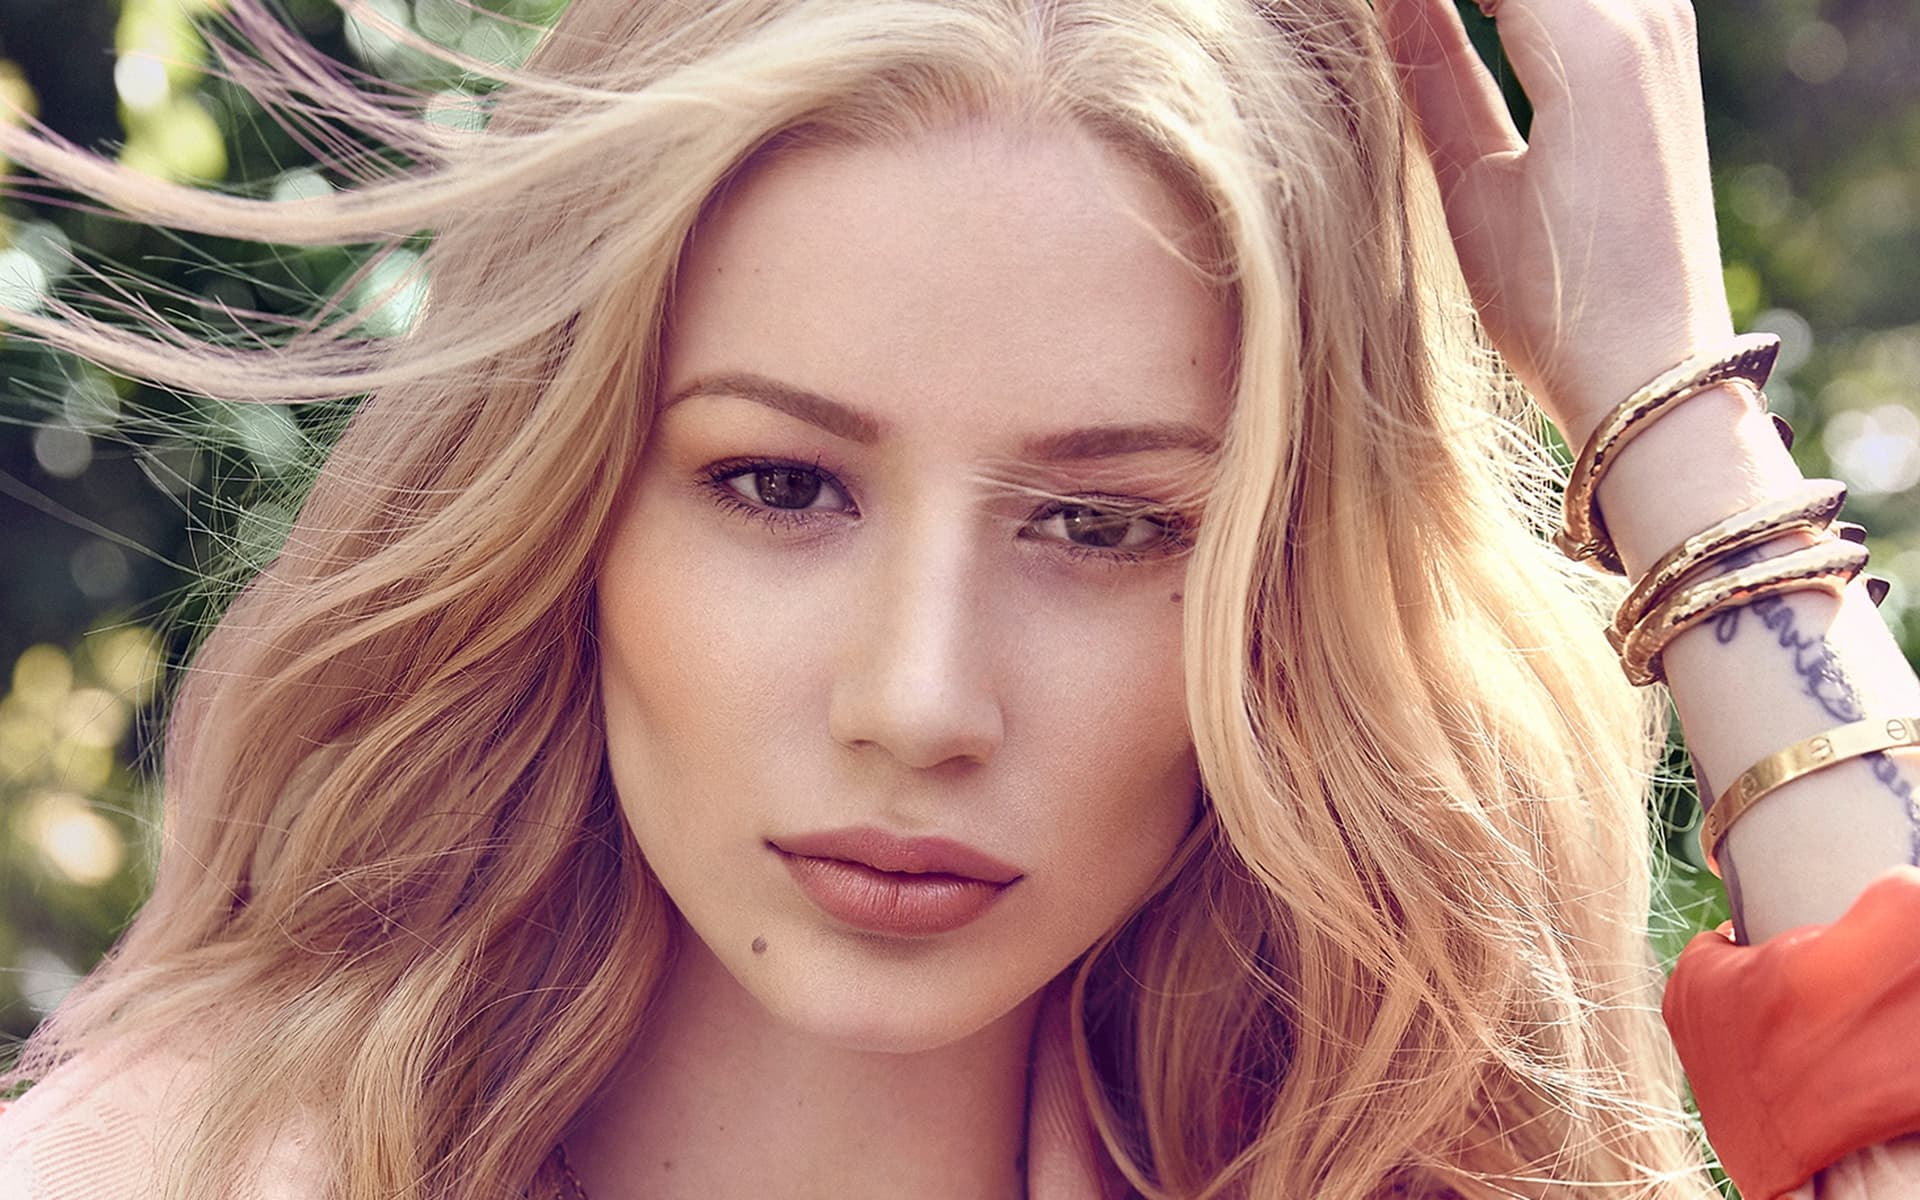 Sport Cars Wallpapers With Girls 7 Iggy Azalea Wallpapers High Quality Download